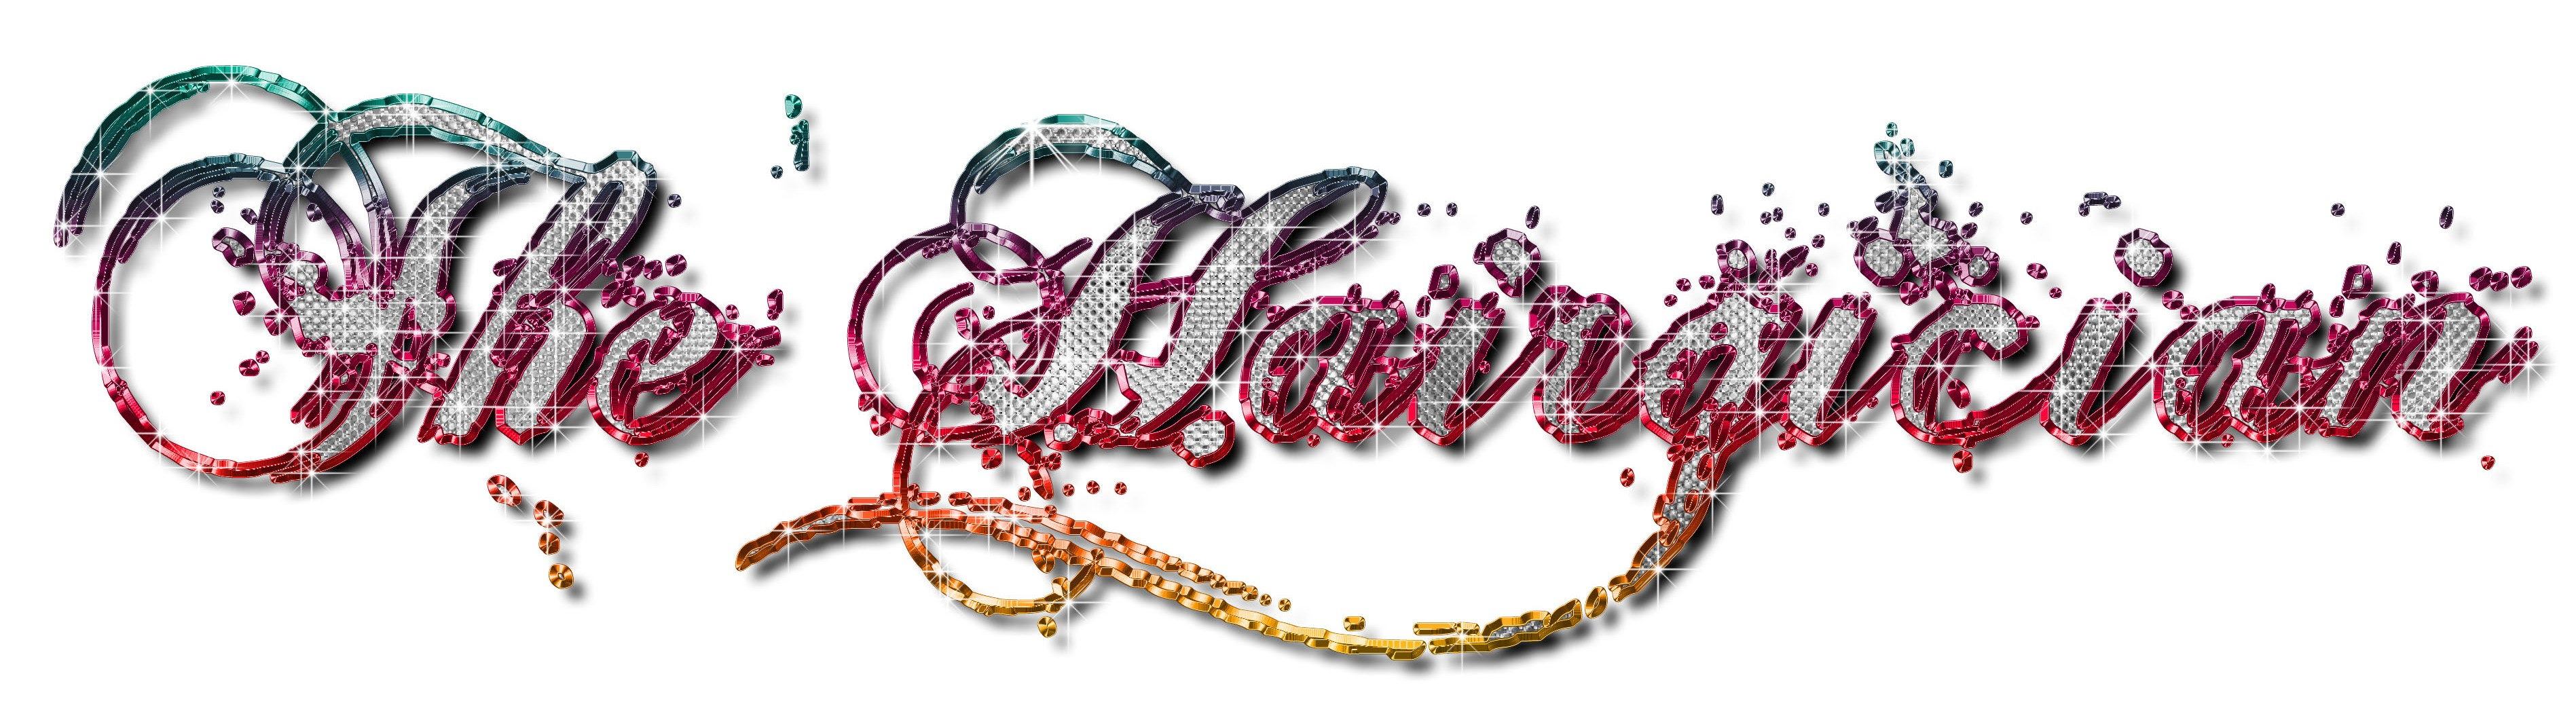 Styllized logo with script font and bling inside.